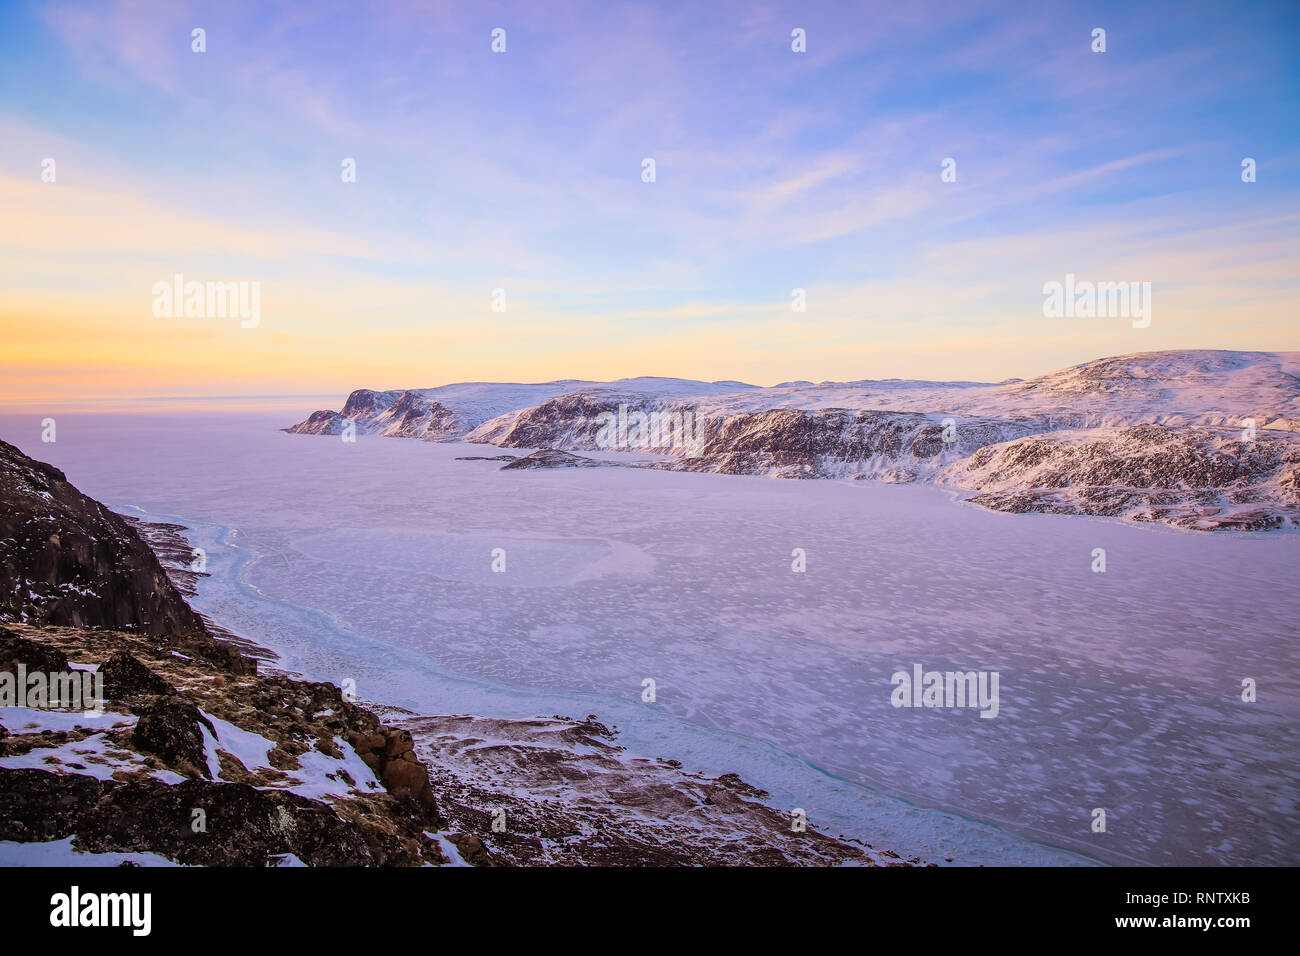 From behind the village Pangnirtung is a mountain with views of the surrounding fiord out to the Cumberland Sea. - Stock Image